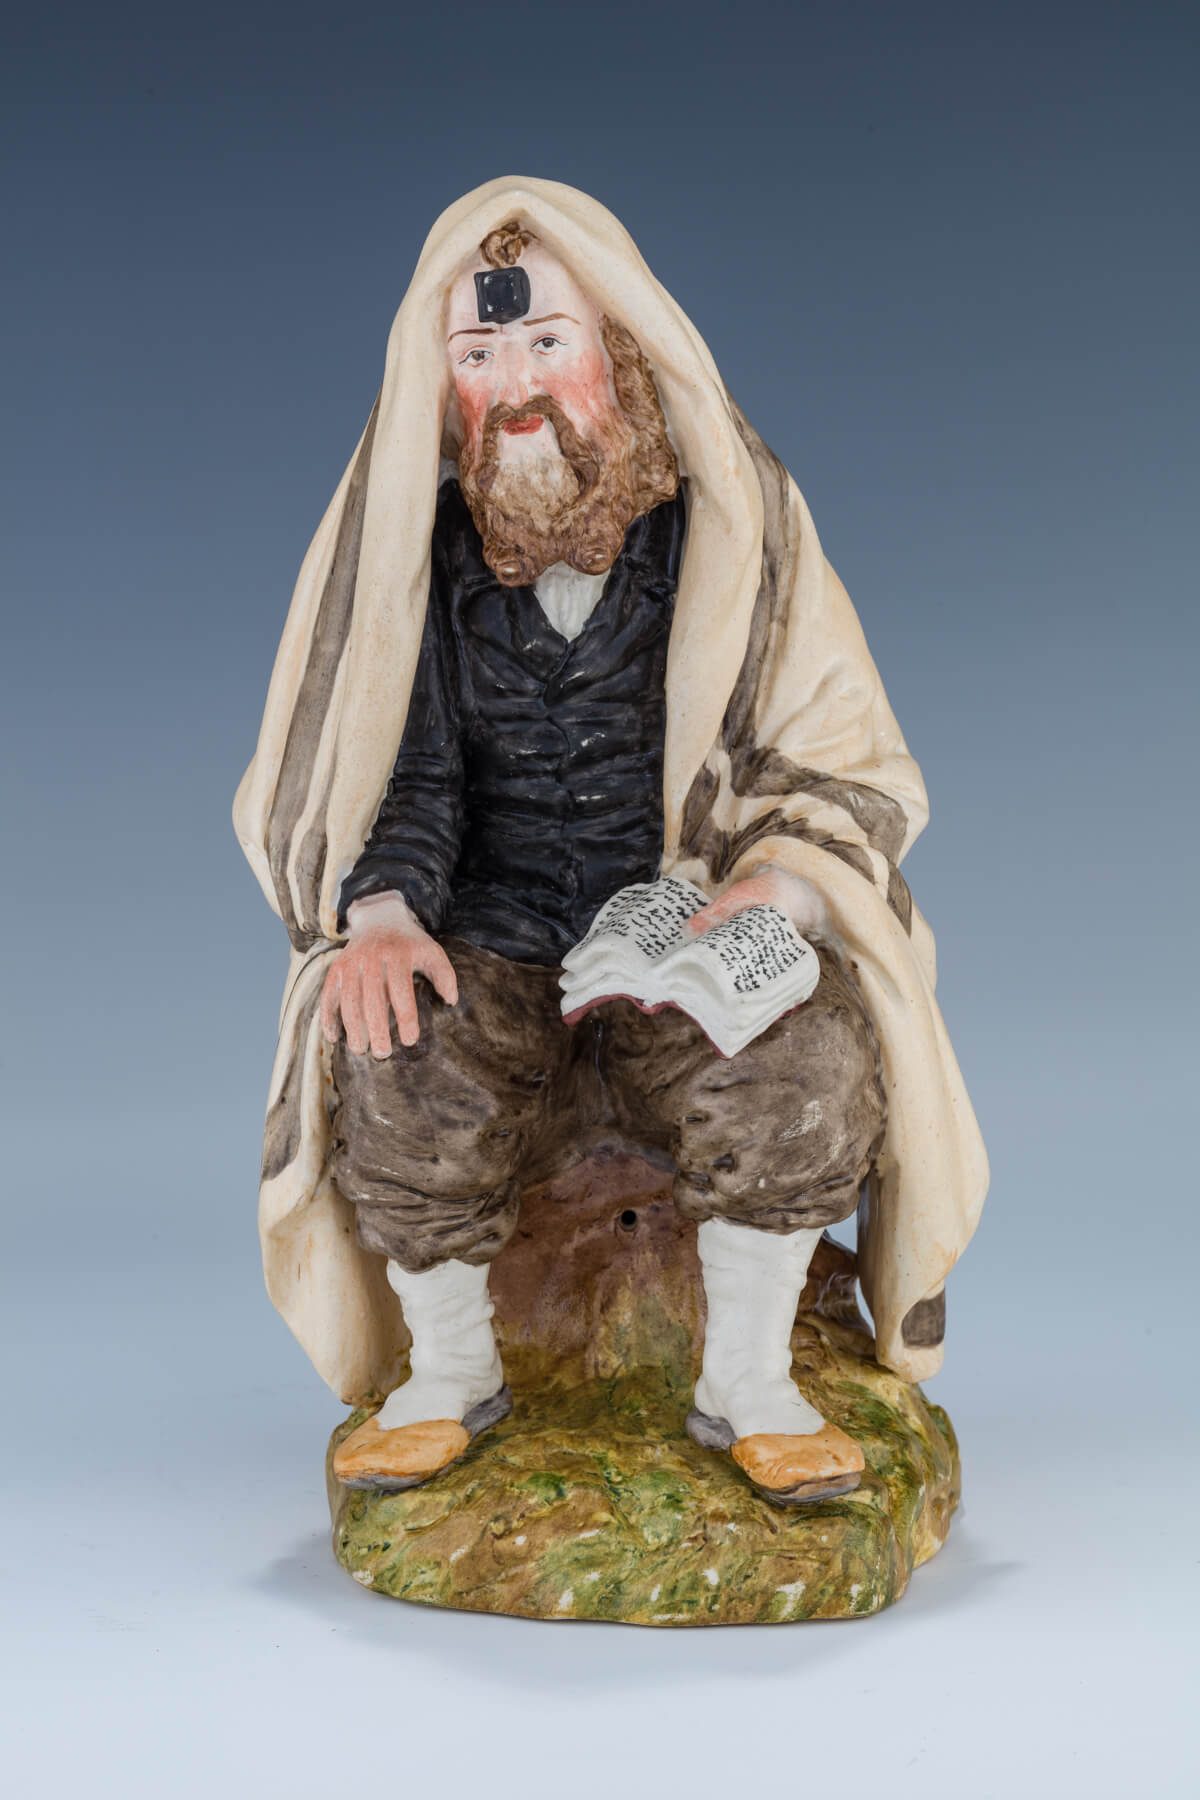 18. A Porcelain Figurine Of A Seated Hasidic Man In Prayer